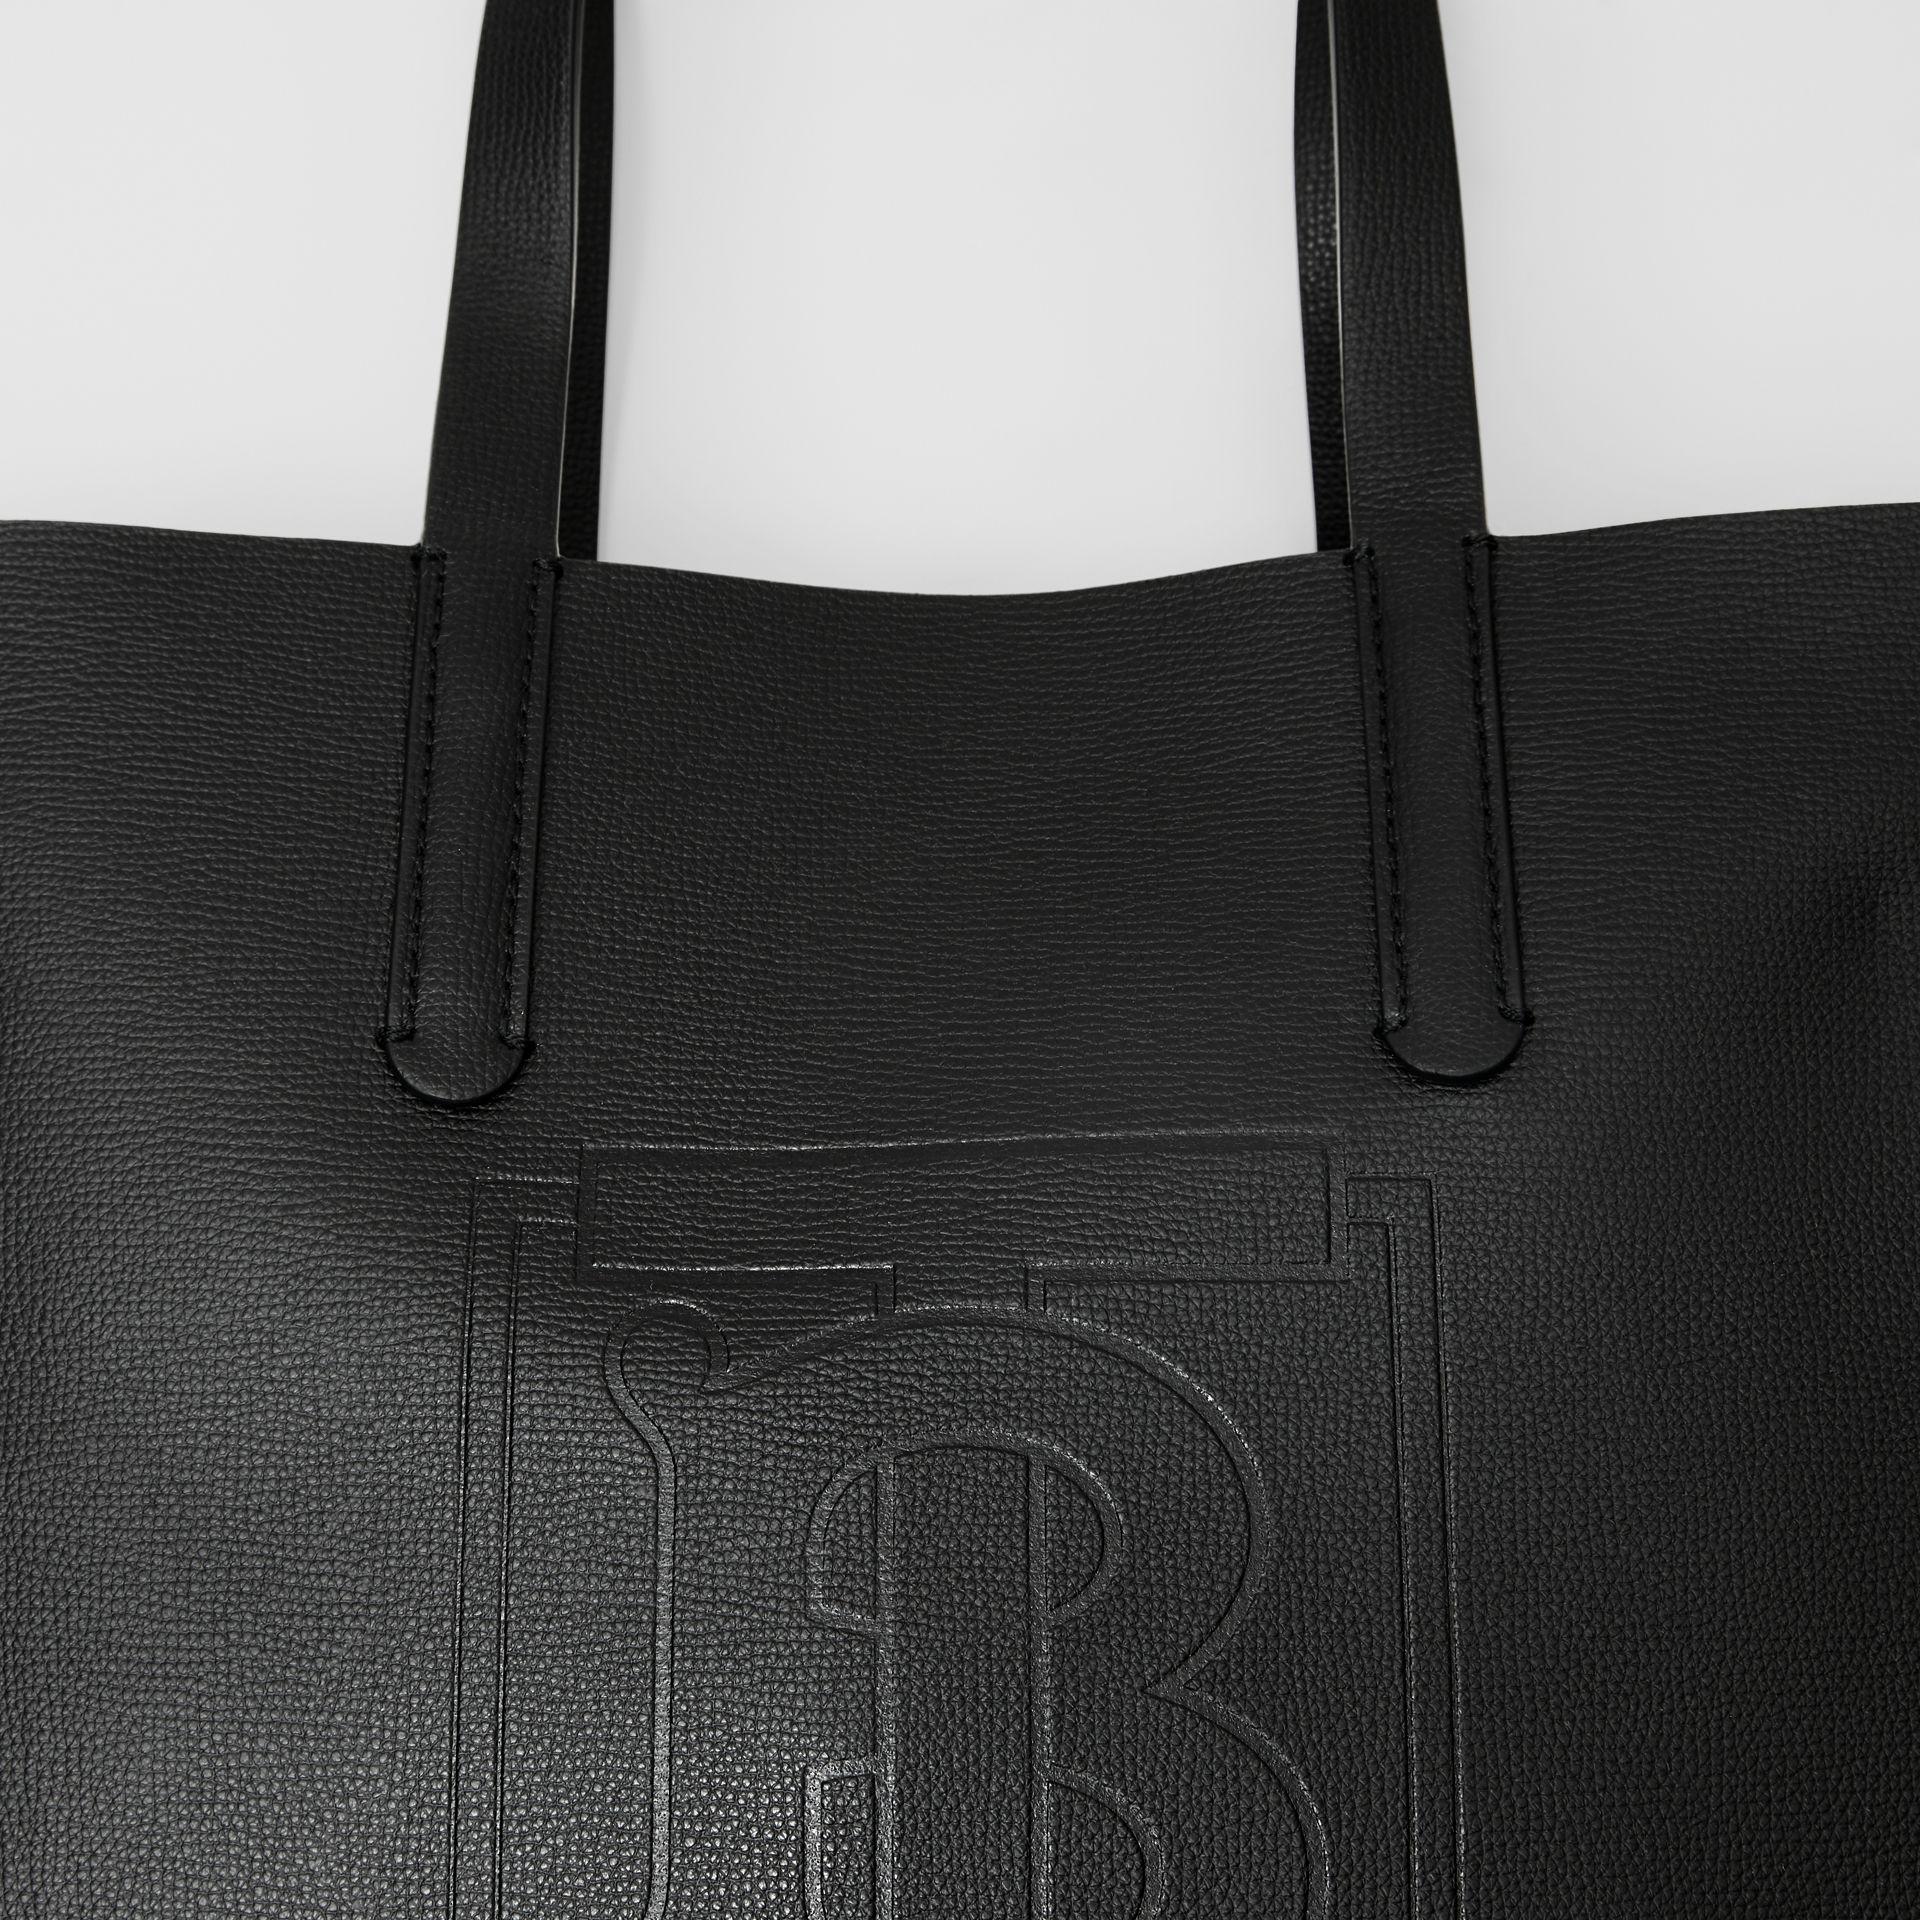 Embossed Monogram Motif Leather Tote in Black - Women | Burberry - gallery image 1